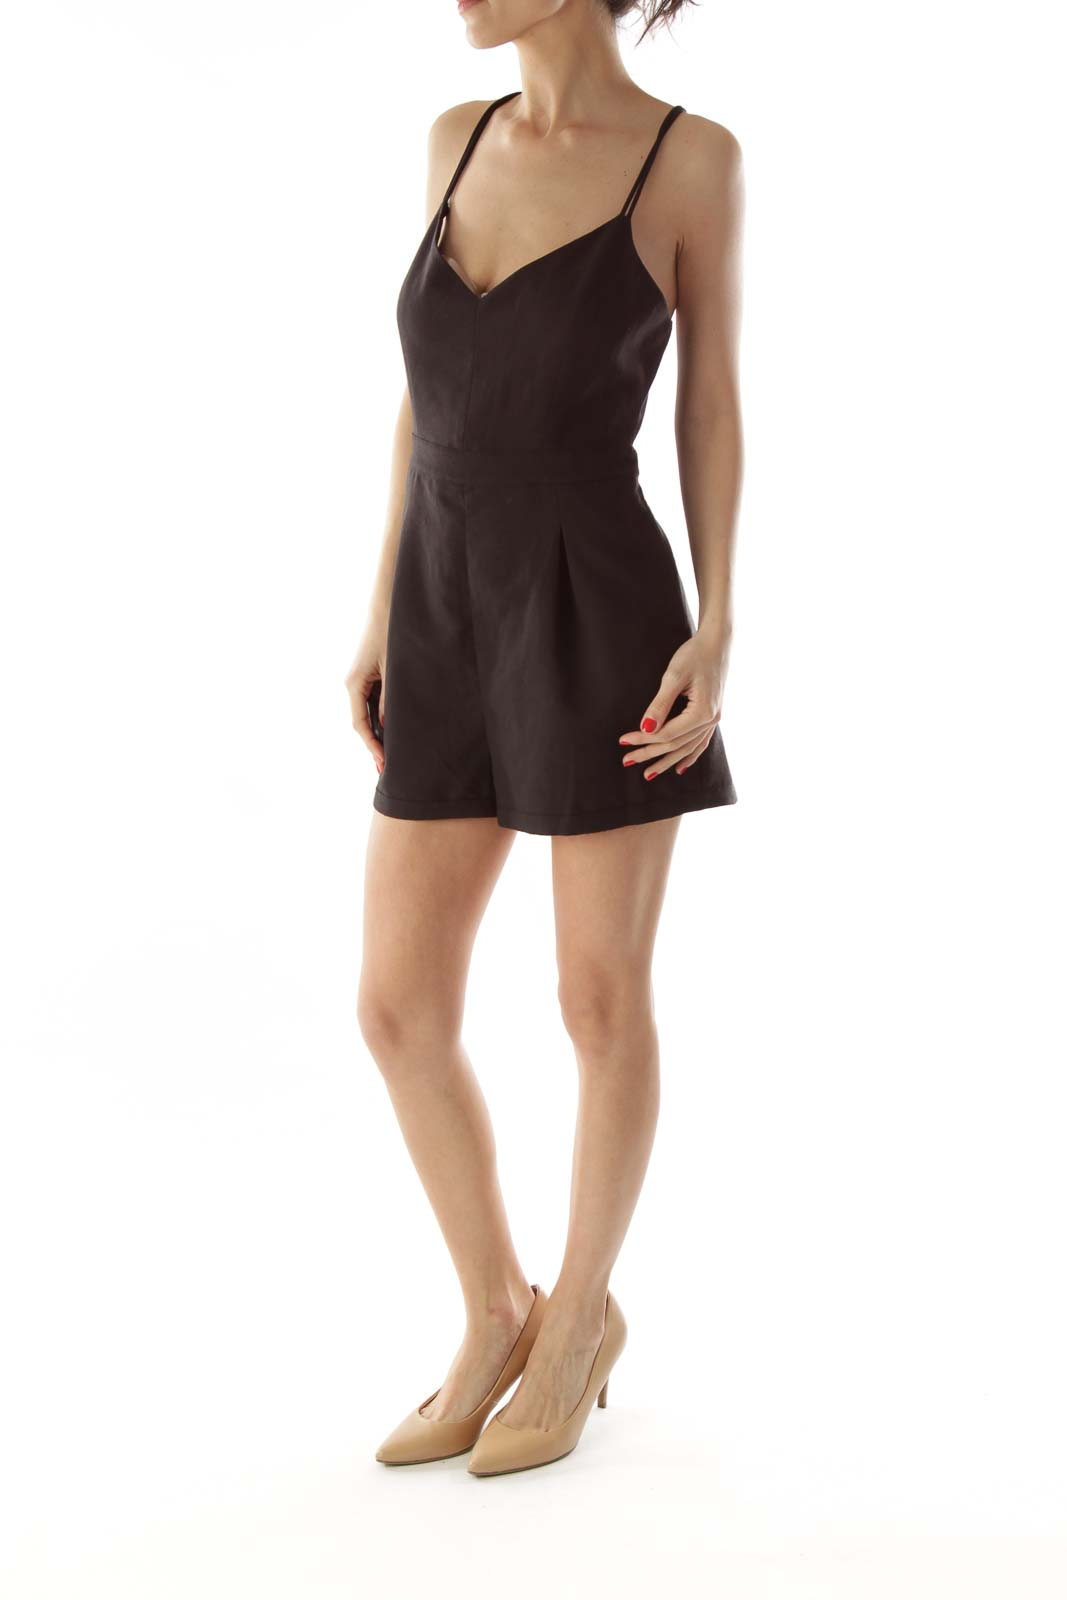 Black Pocketed Spaghetti Strap Romper